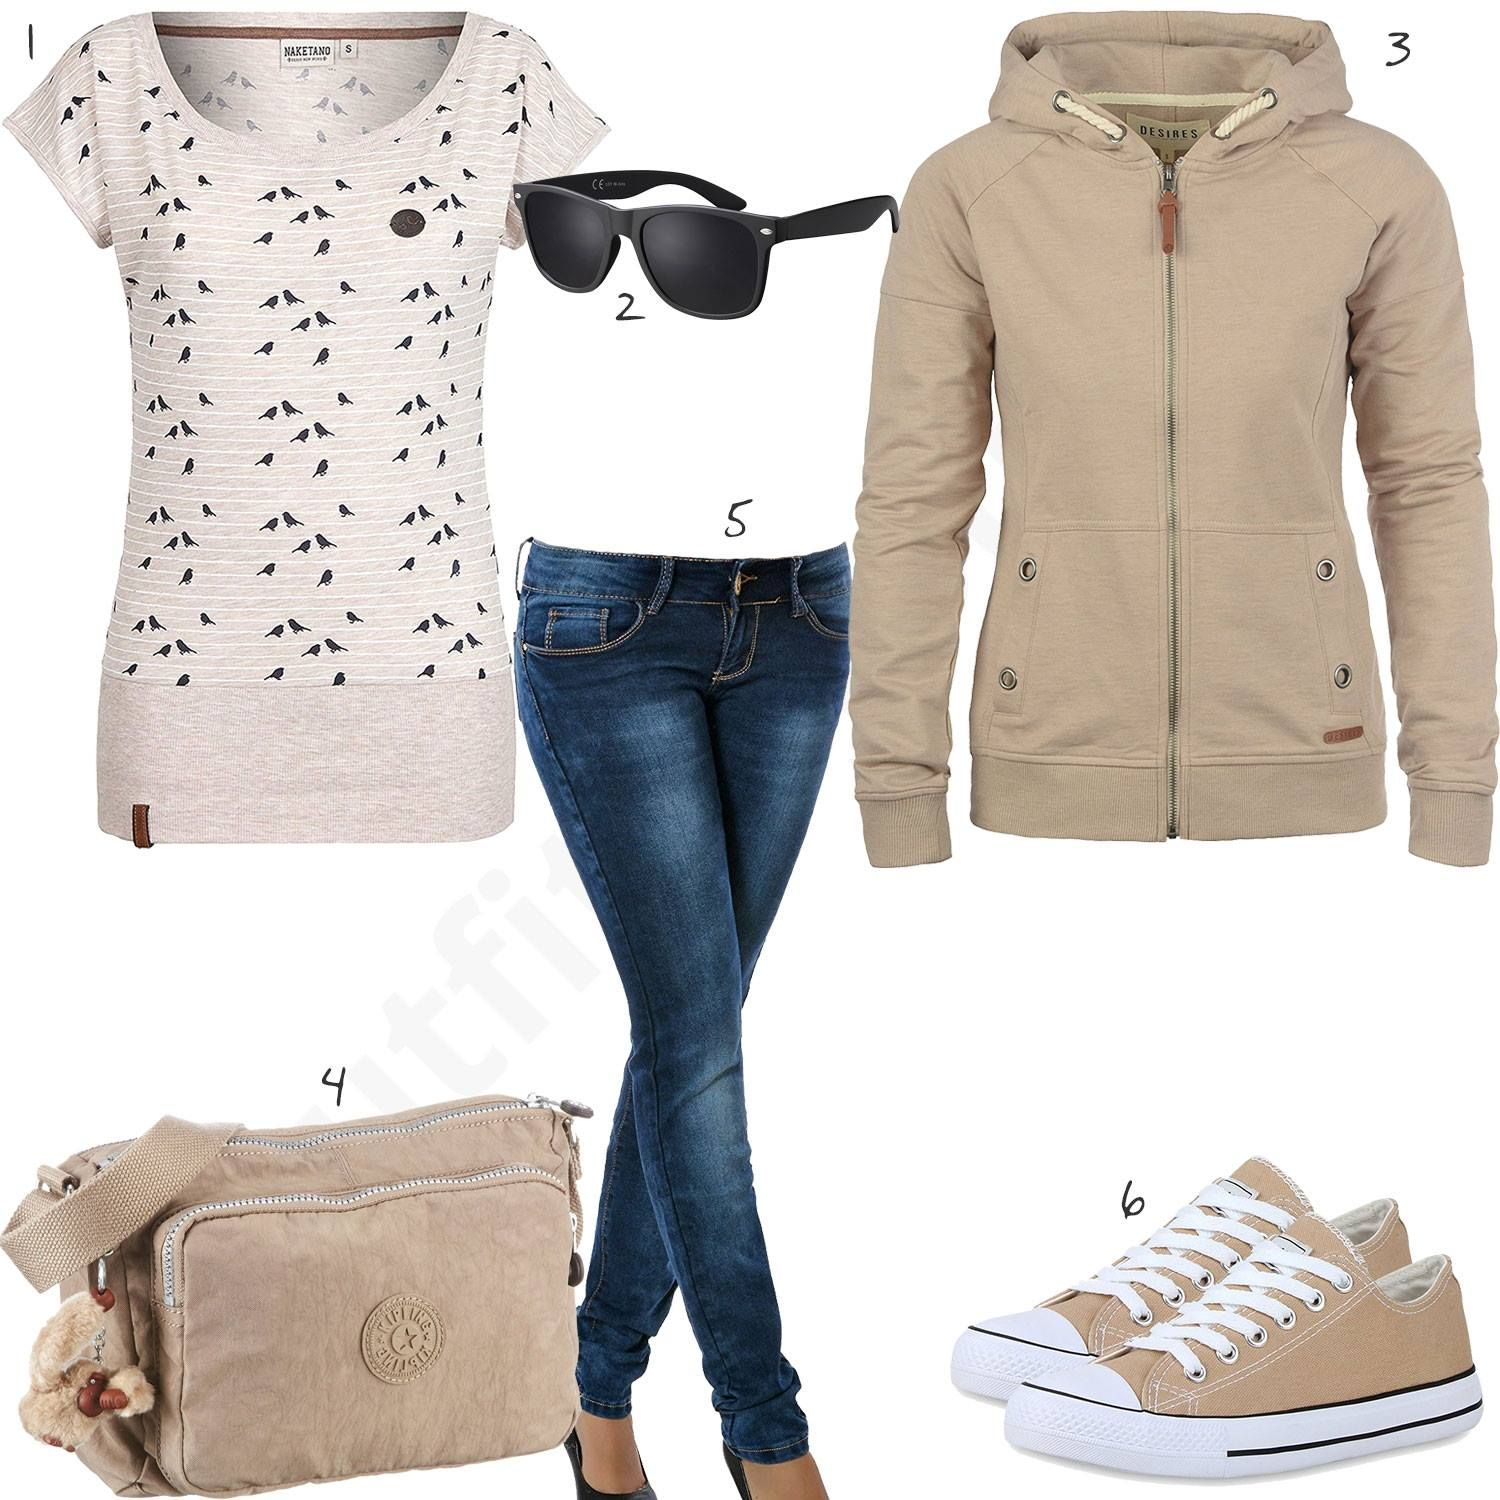 frauenoutfits - die besten styles 2020 - outfits4you.de